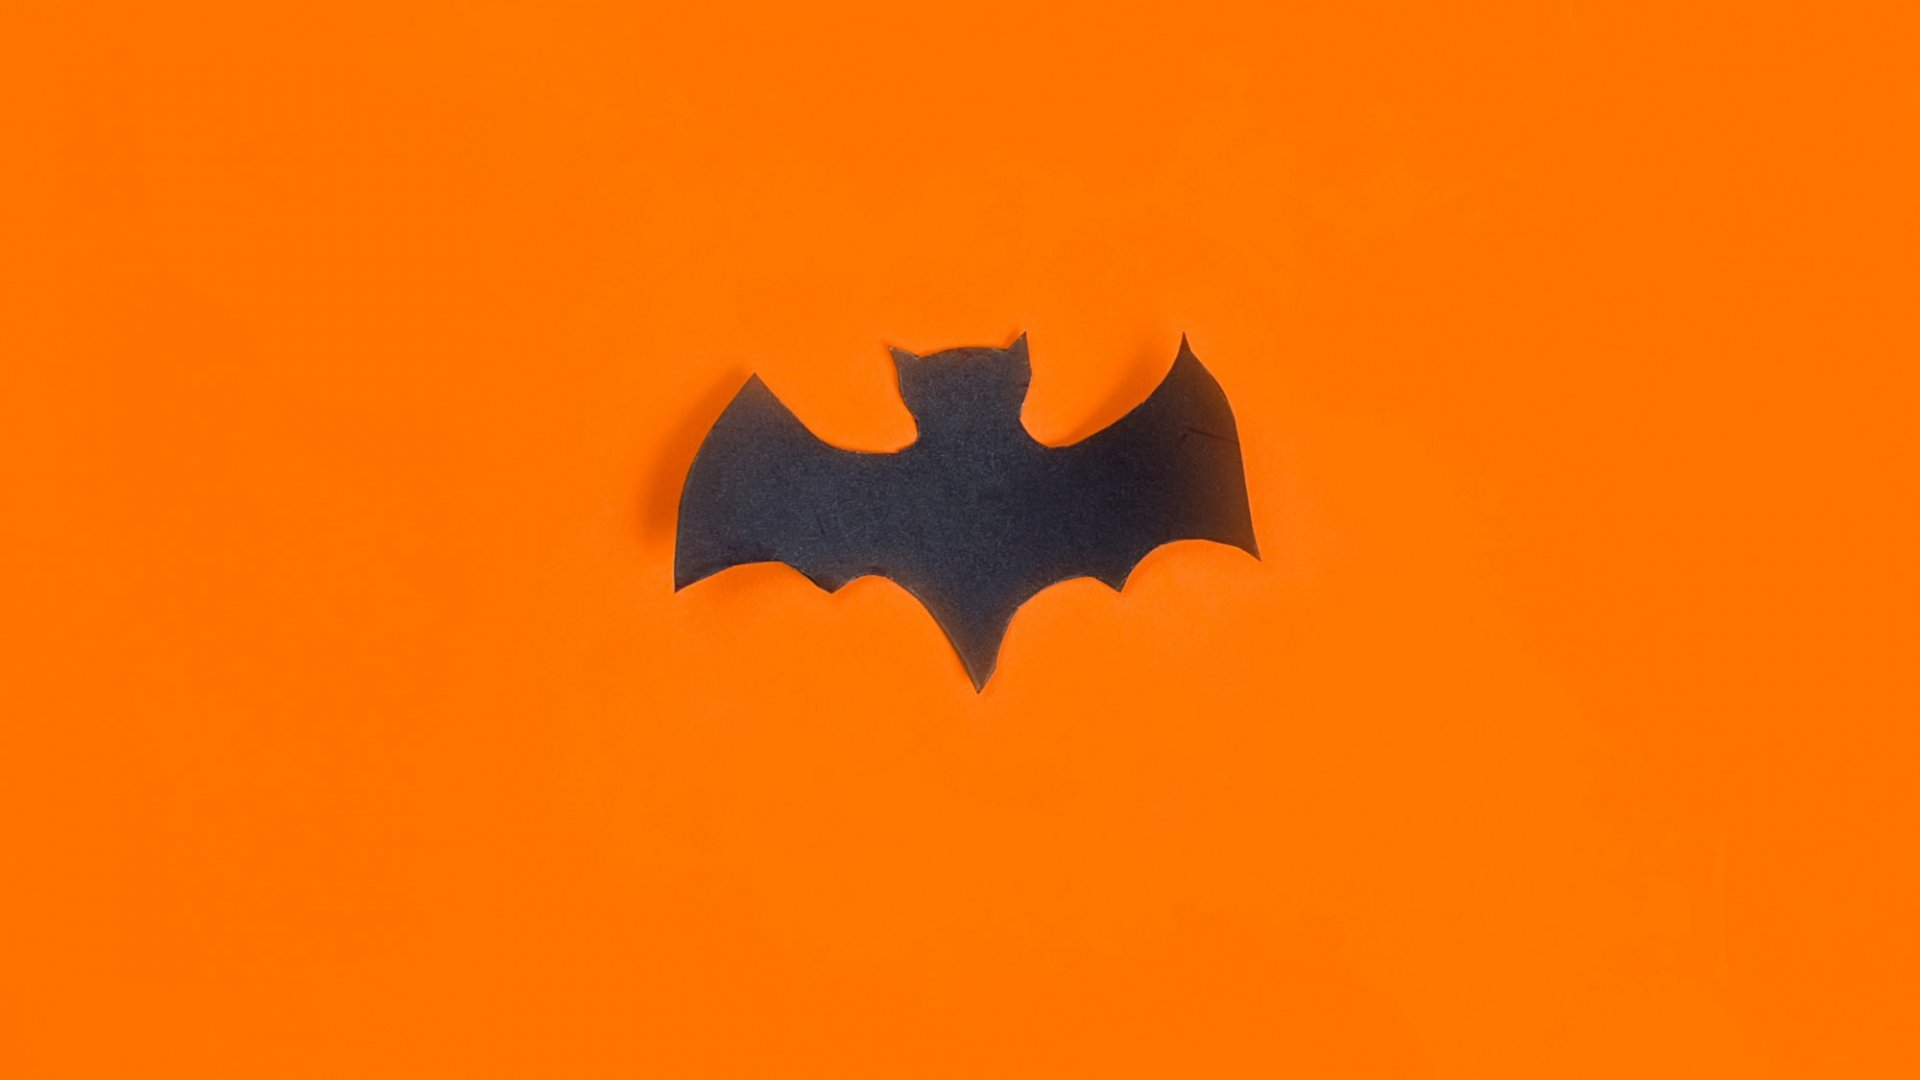 If You Are Going to Be an Entrepreneur, You Will Need to Find Your Inner Batman